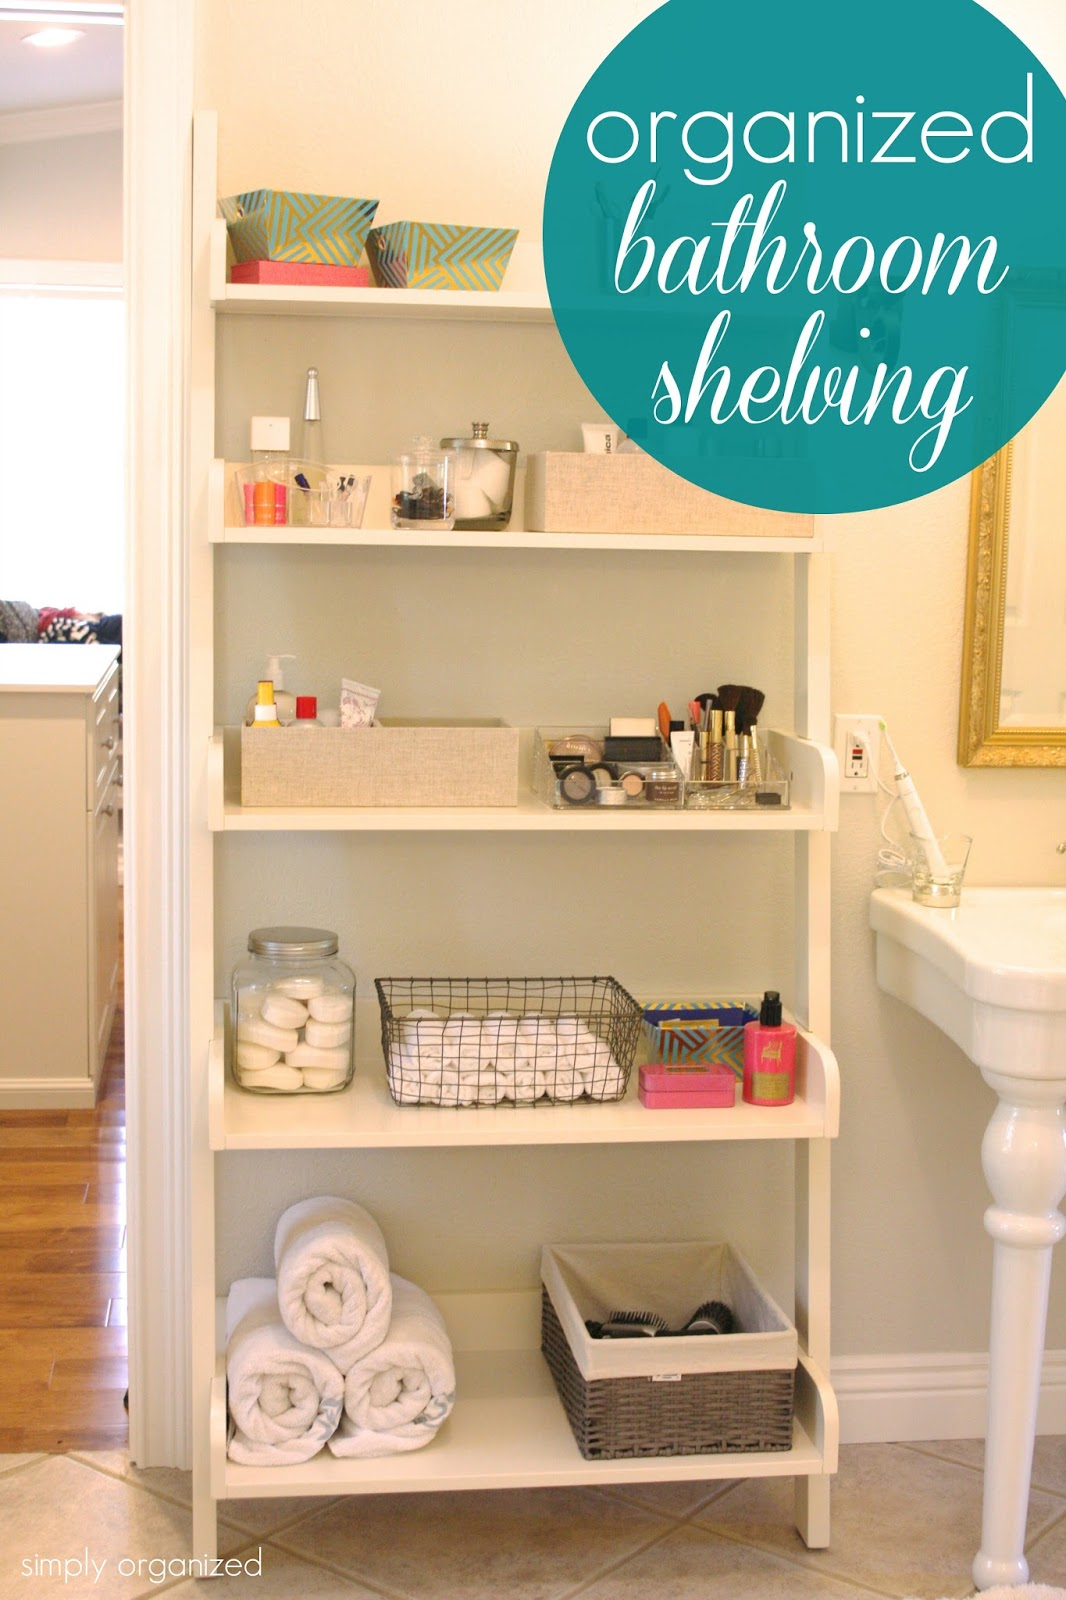 organized bathroom shelving Home Improvement organized bathroom